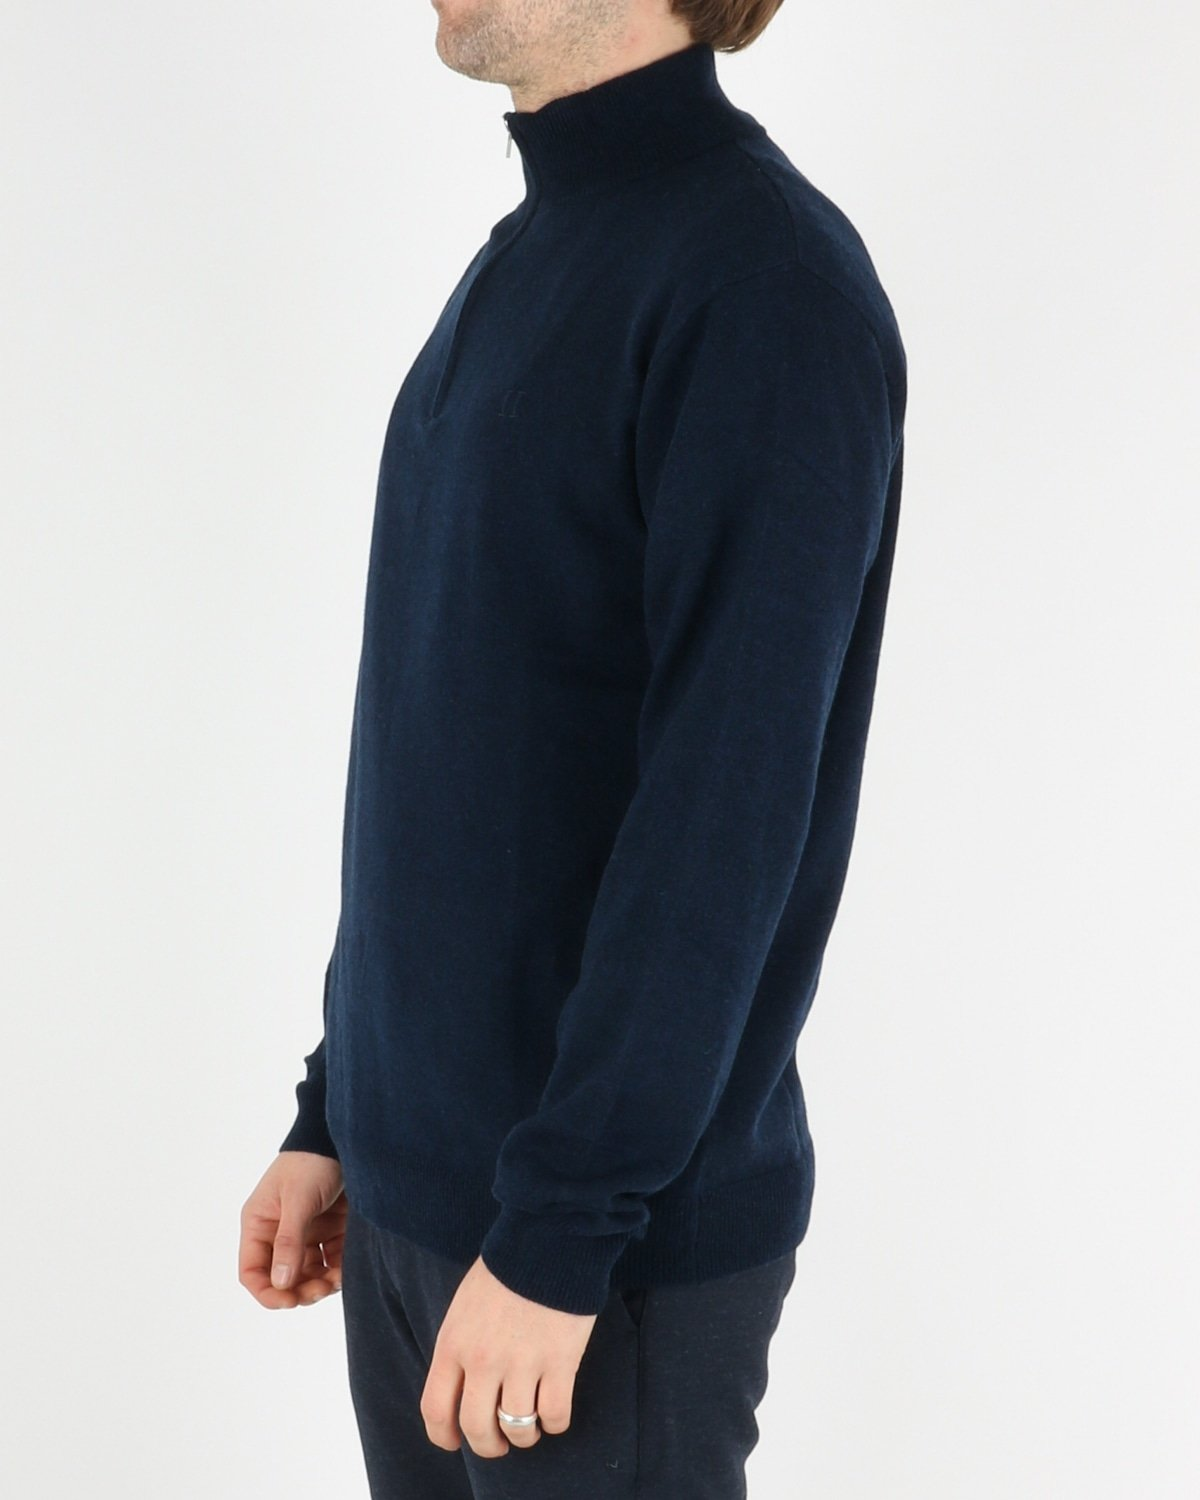 les deux_cashmerino zipper knit_dark navy_2_4